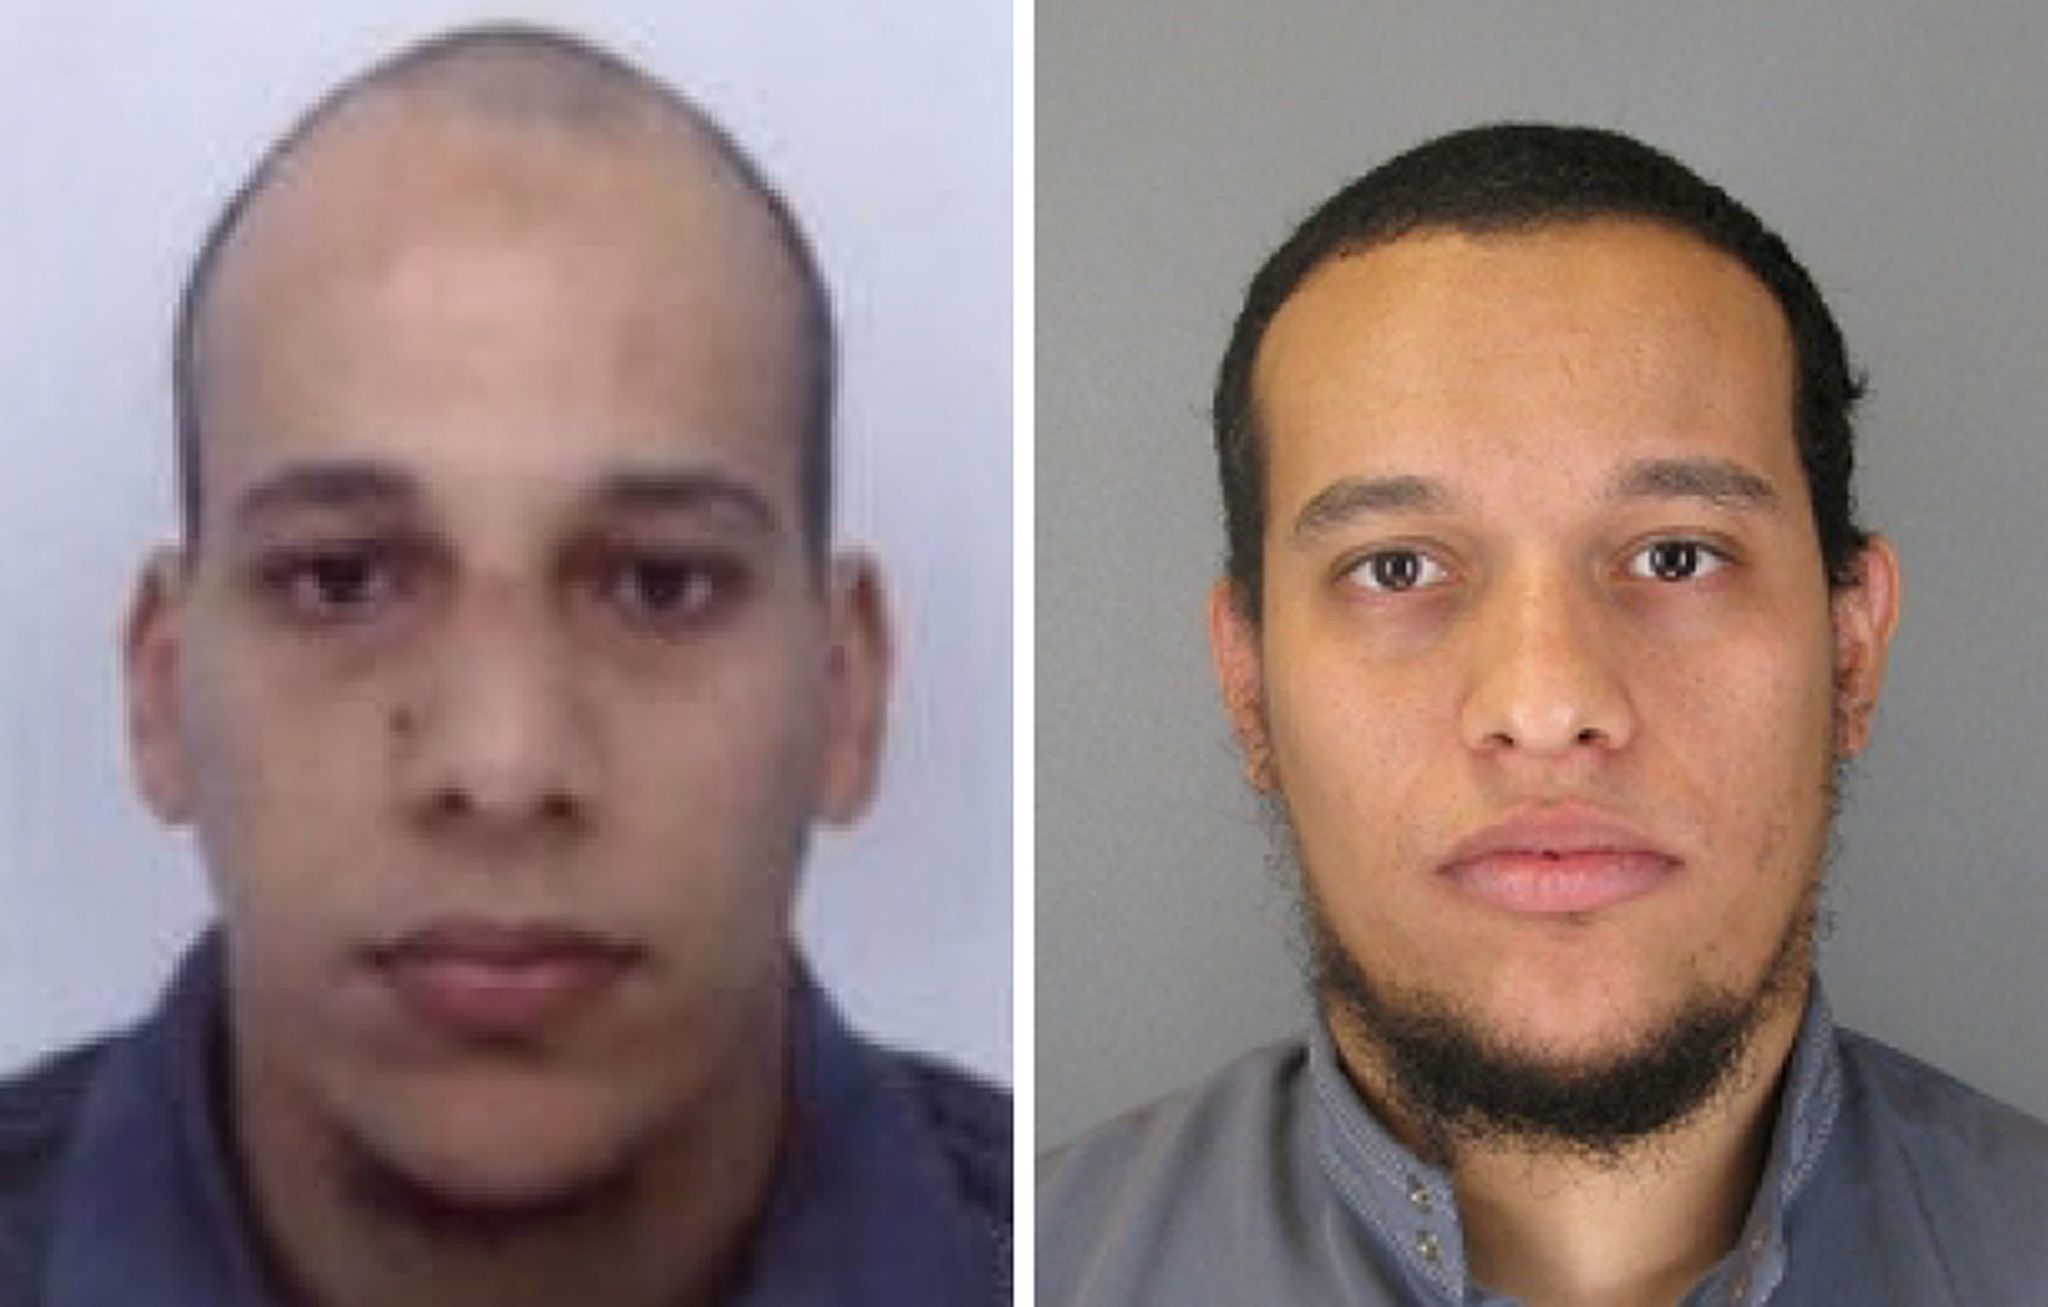 Cherif Kouachi, left, and his brother Said Kouachi were behind the deadly attack at the satirical Charlie Hebdo magazine in France.